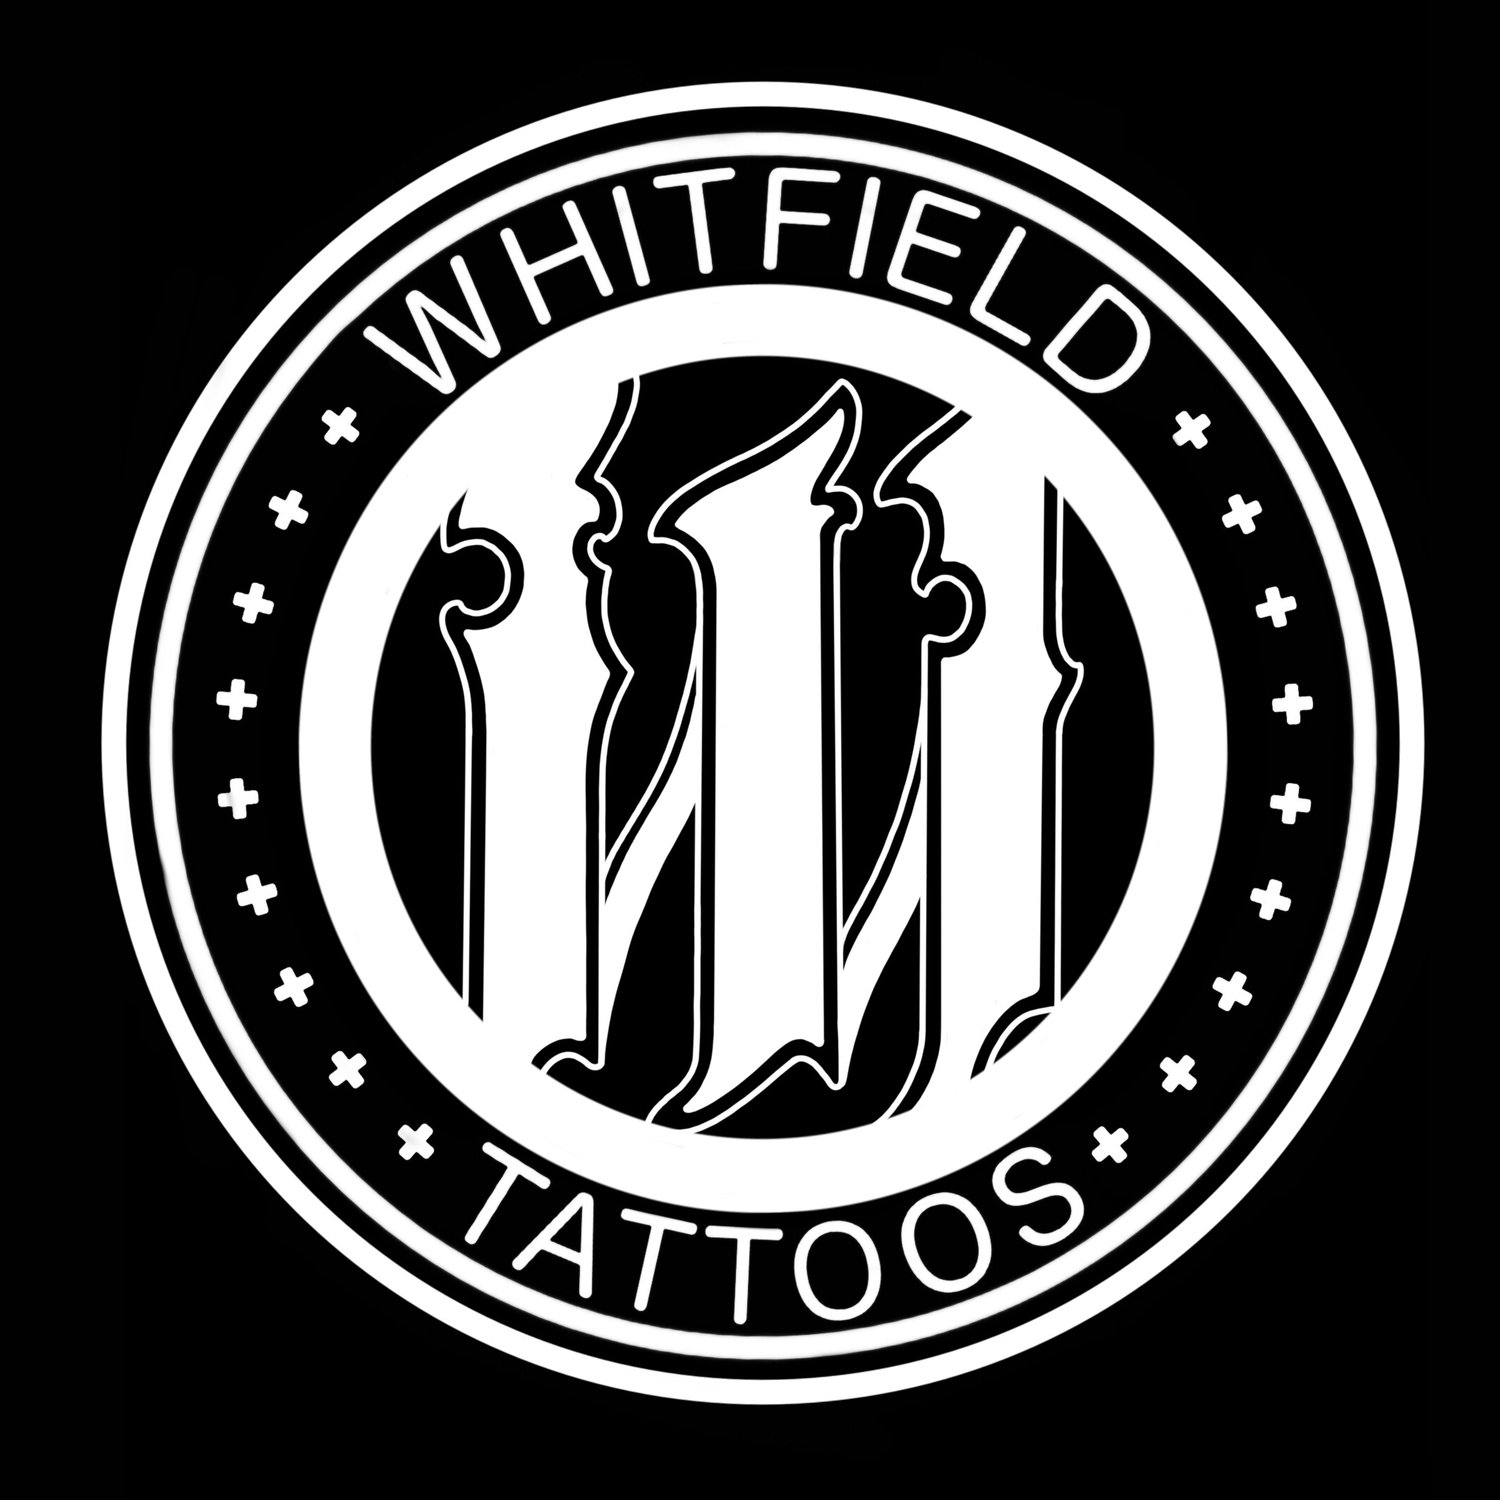 Whitfield Tattoos